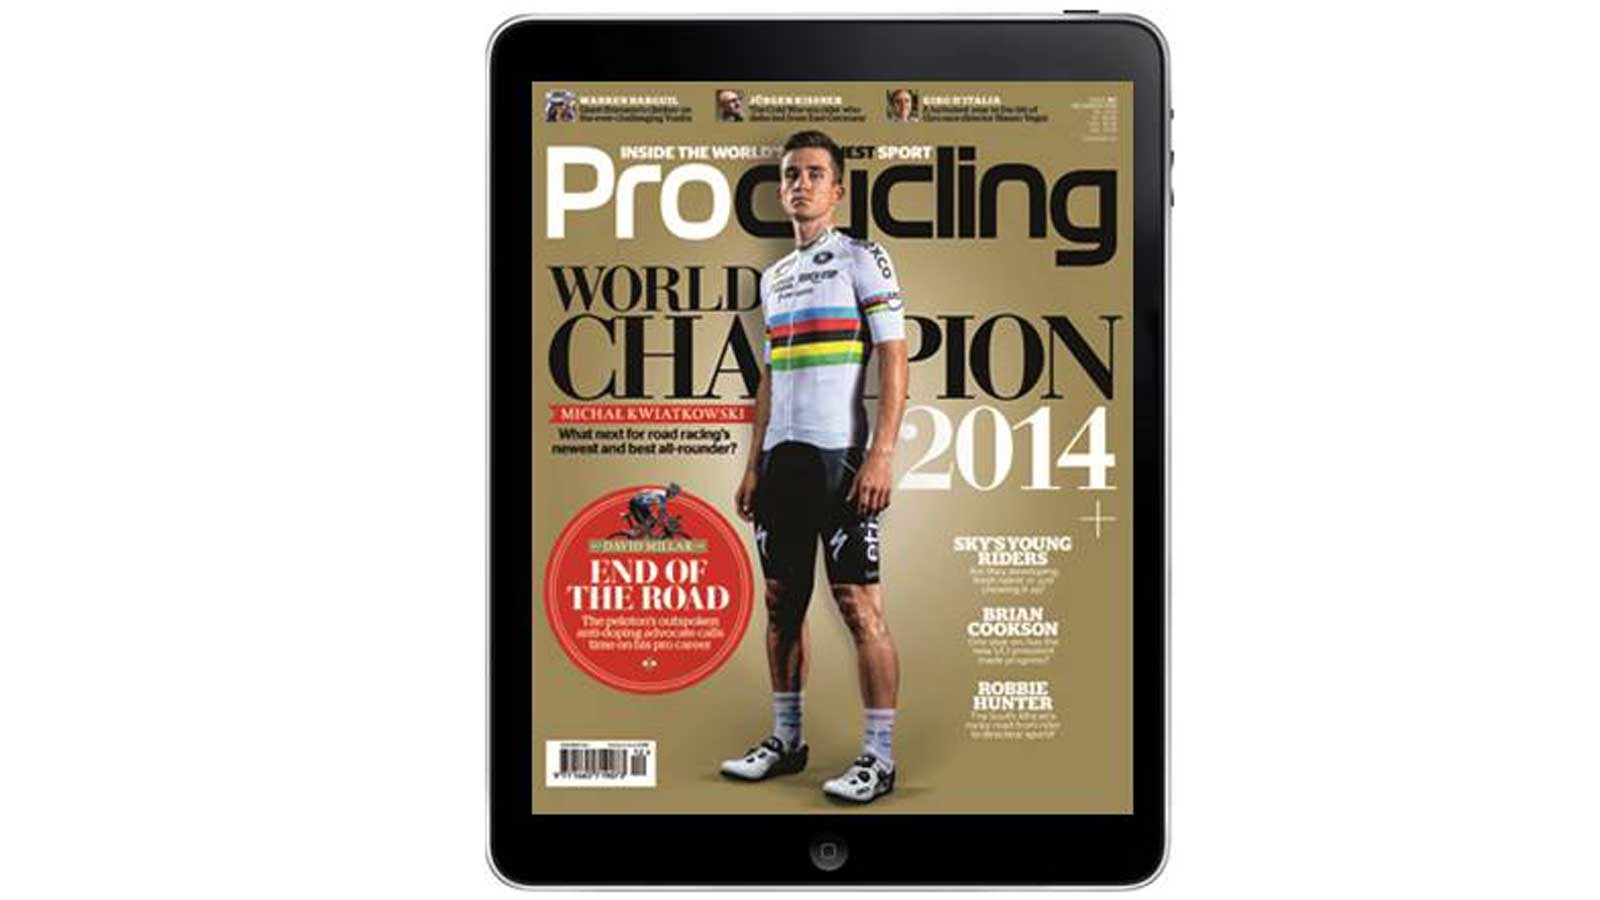 Love the sport of cycling? Procycling is for you